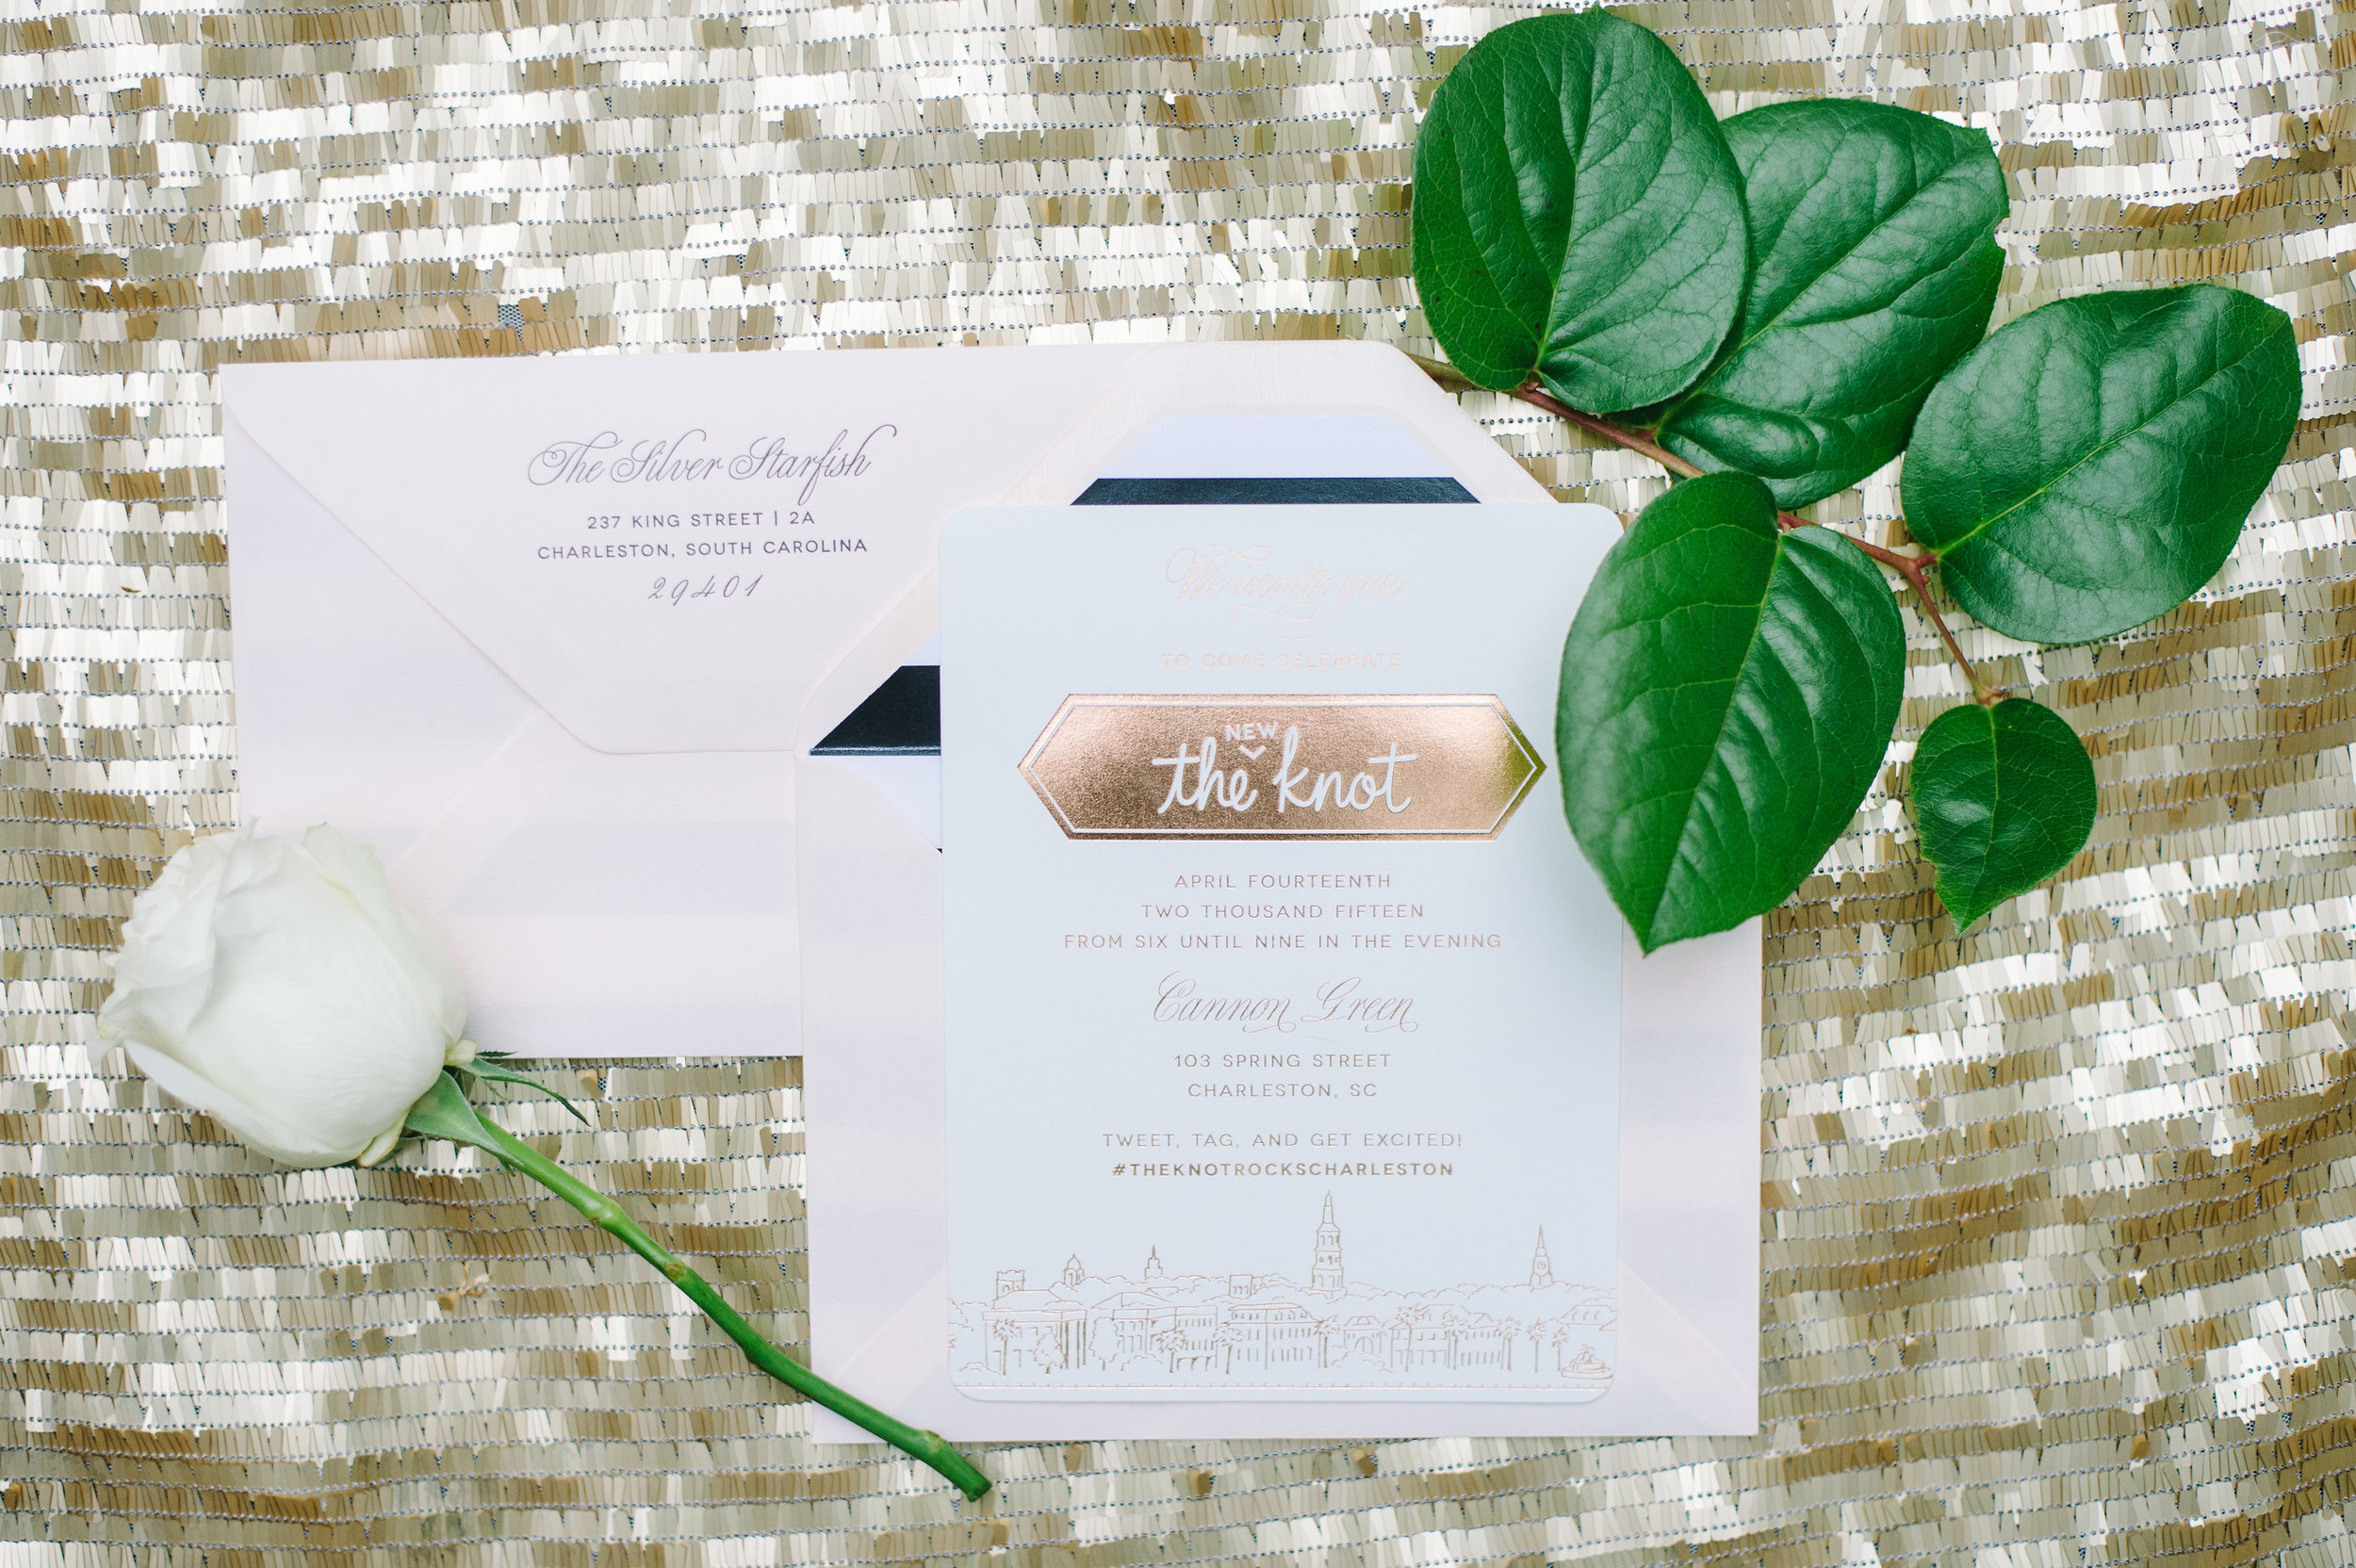 the-silver-starfish-stationery-wedding-invitations-charleston-sc-cannon-green-the-knot-market-mixer